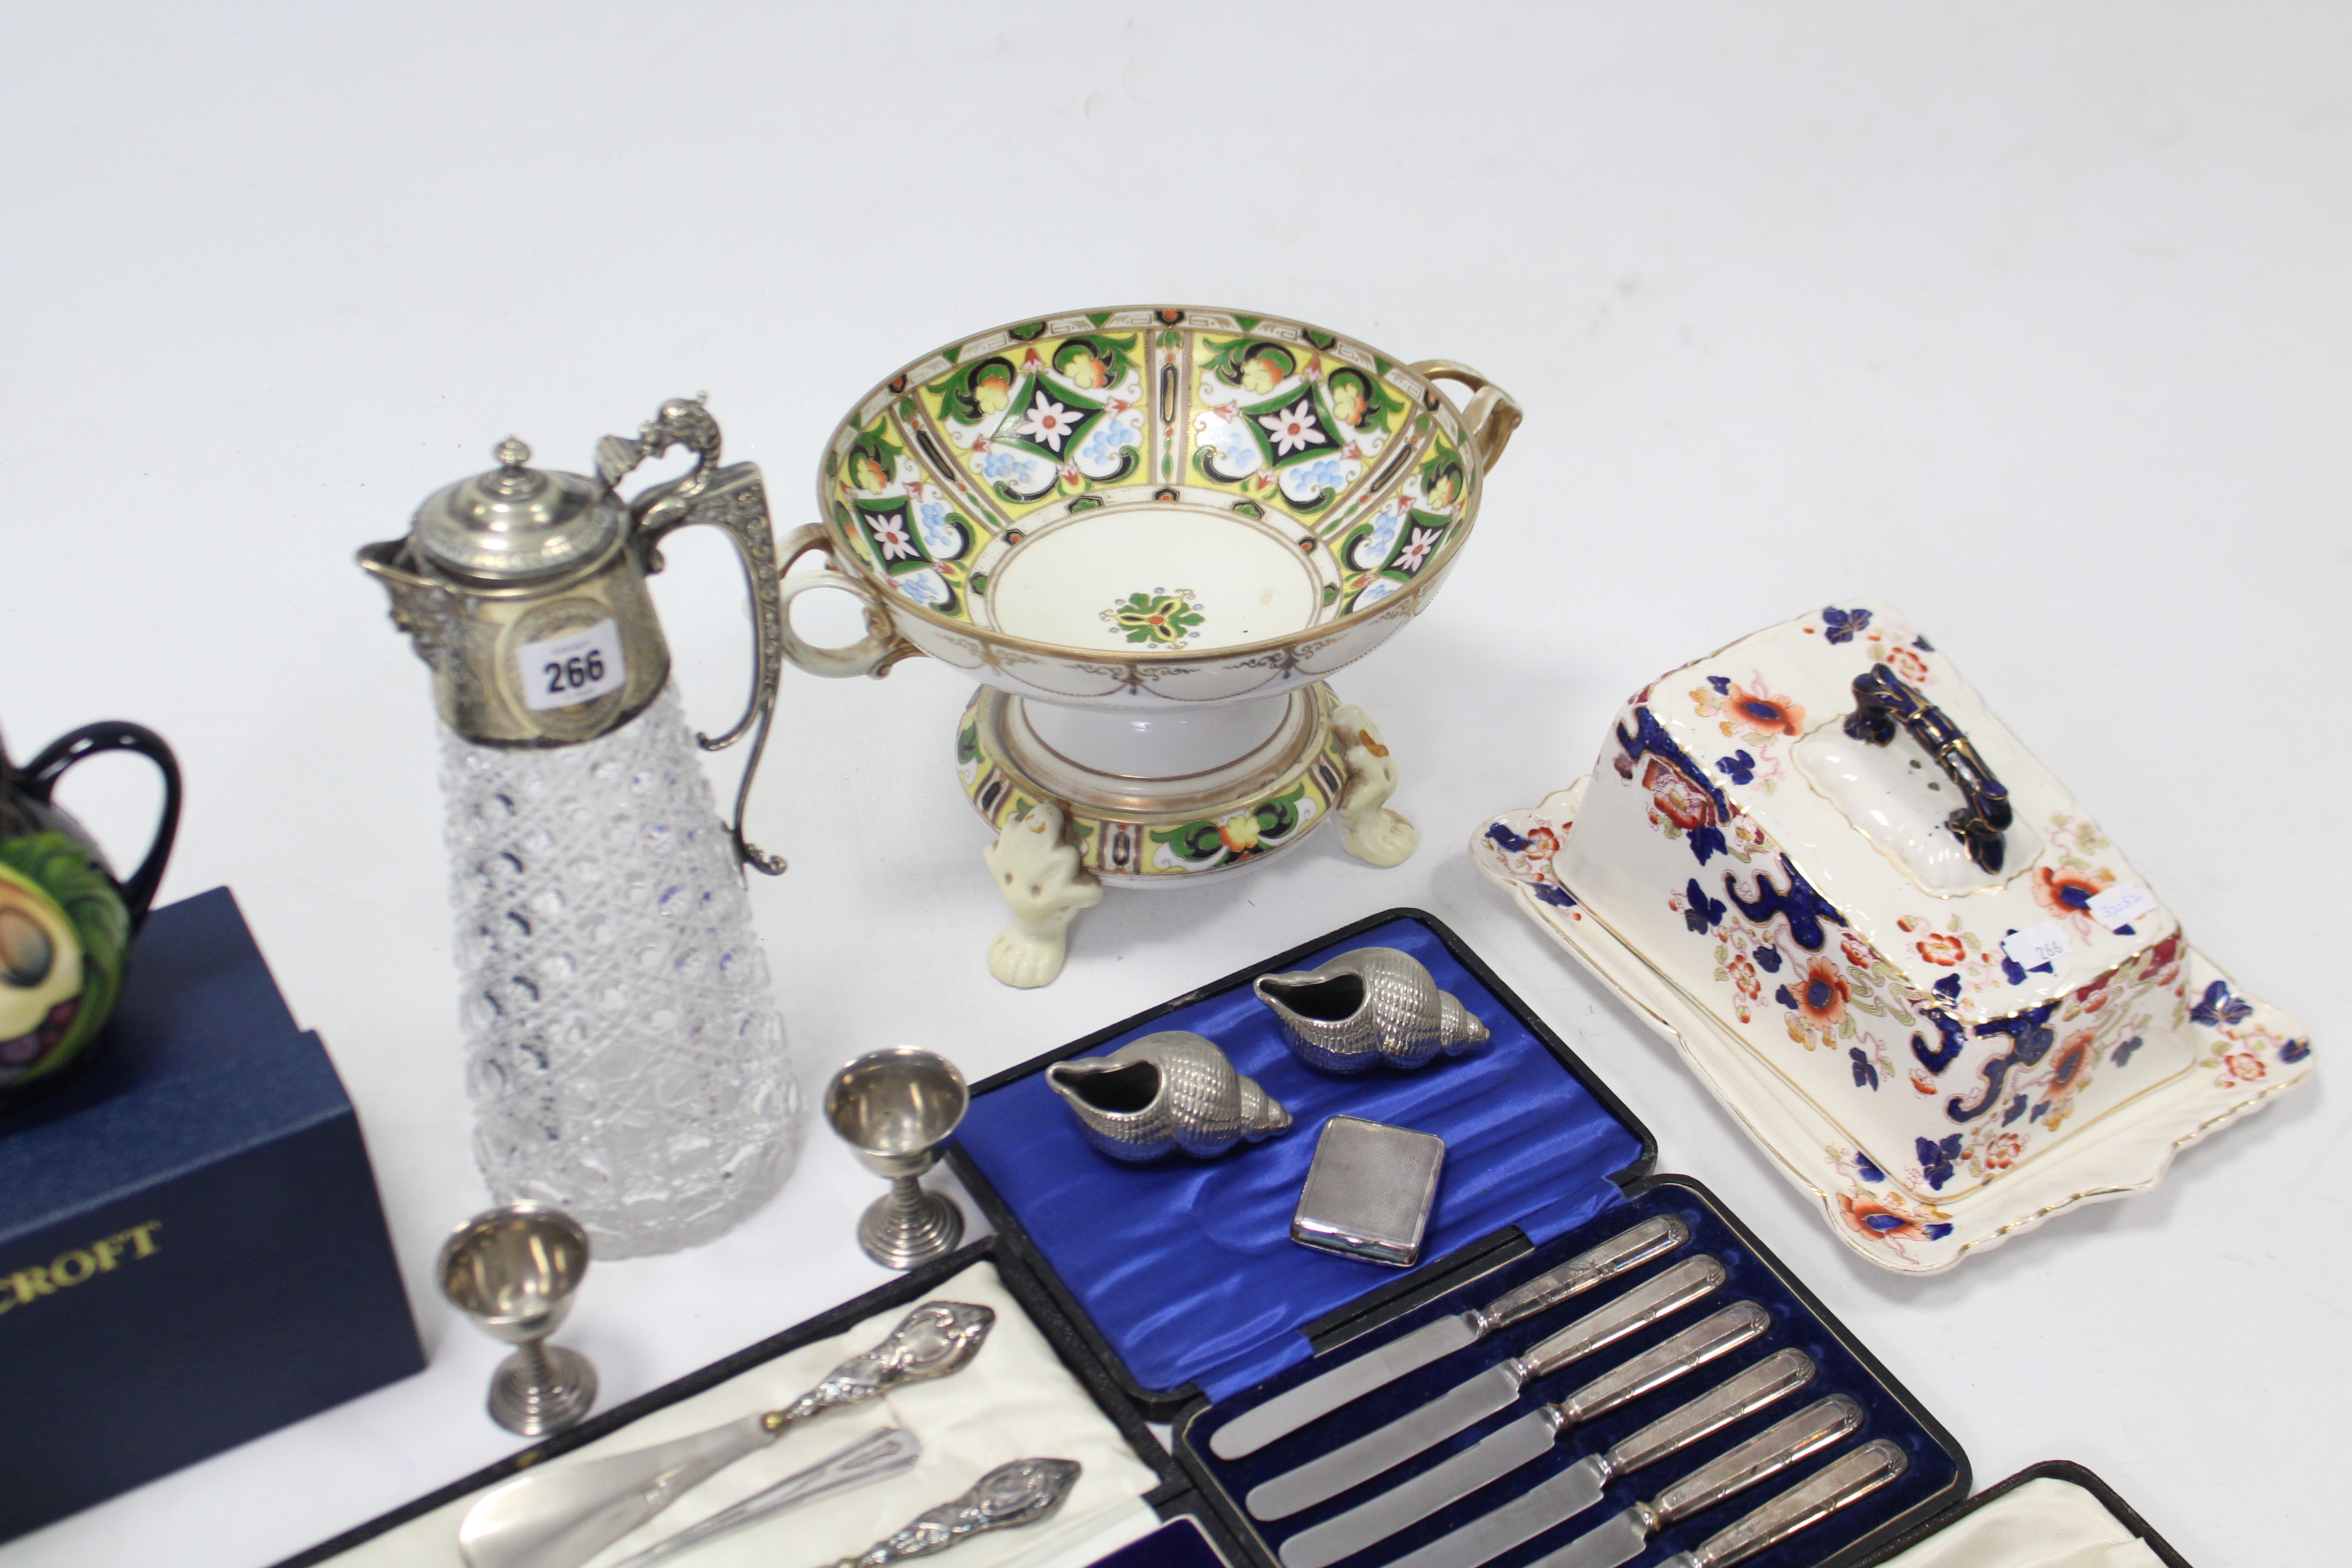 Lot 266 - A heavy cut-glass claret jug with plated mounts; various items of plated cutlery (cased); various